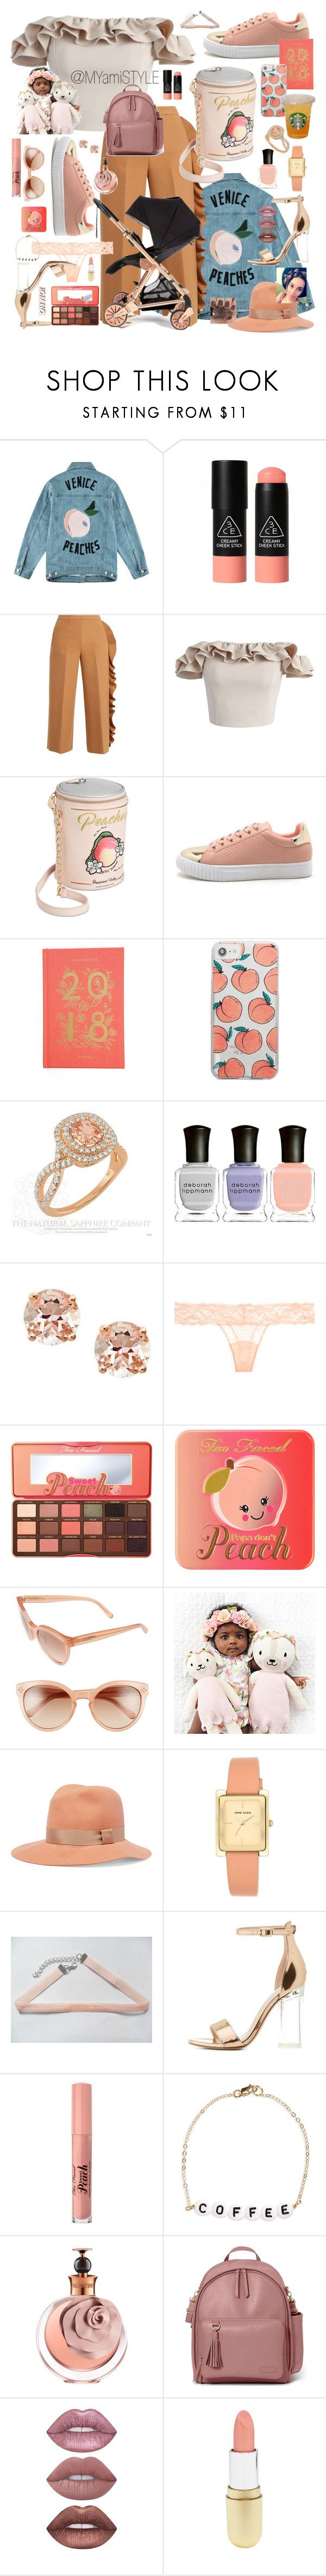 """""""Miss Peaches 🍑"""" by myamistyle ❤ liked on Polyvore featuring Être Cécile, 3 Concept Eyes, MSGM, Chicwish, Betsey Johnson, Rifle Paper Co, Skinnydip, Deborah Lippmann, Anika and August and La Perla"""